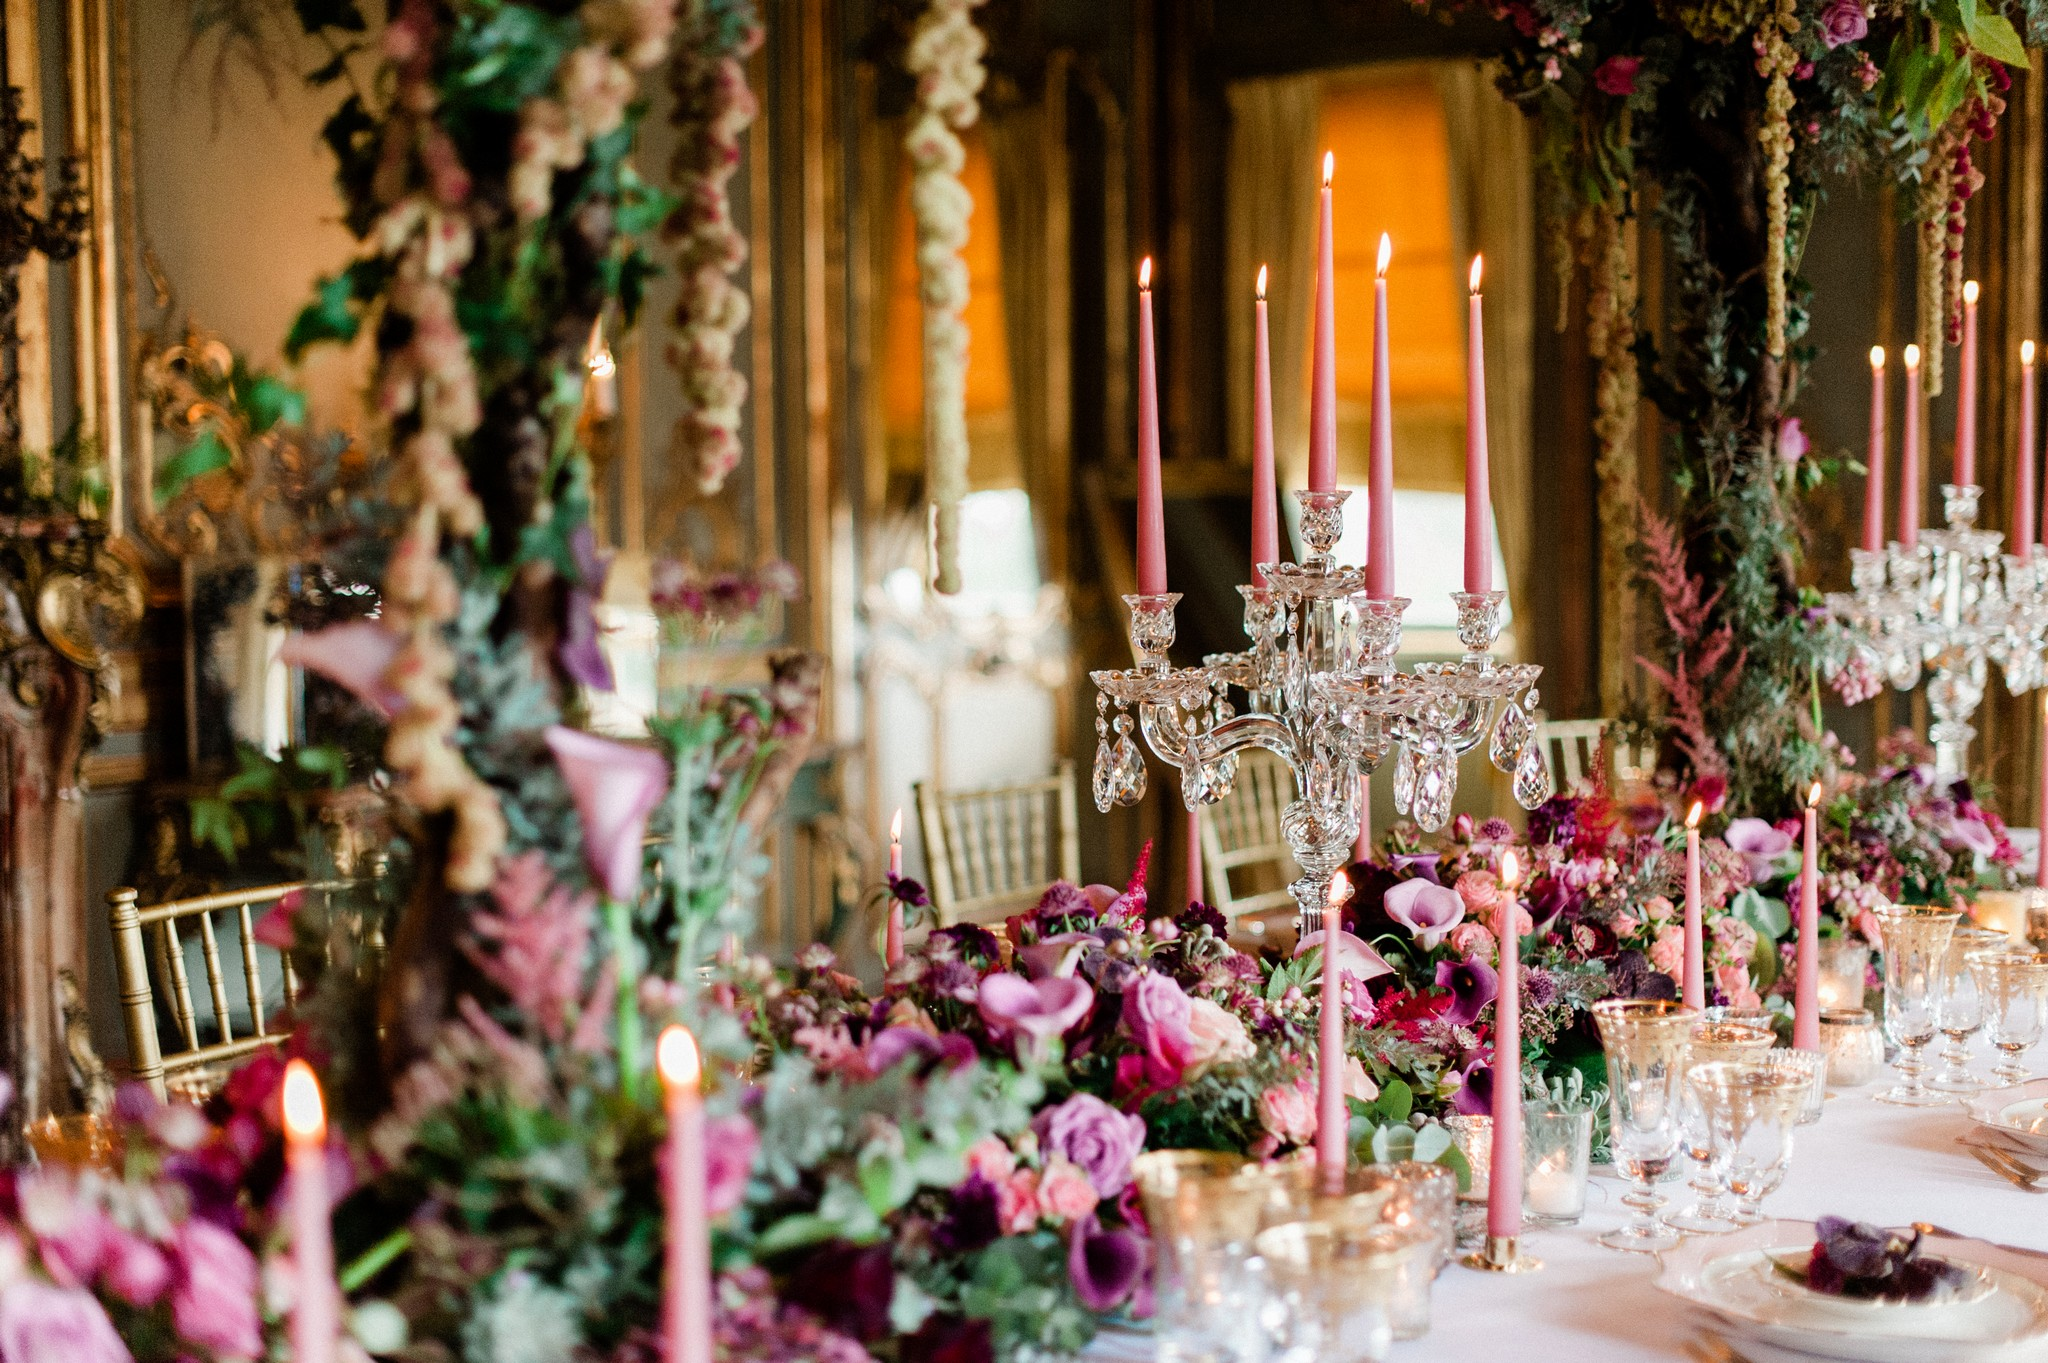 Member Focus - Couture Events